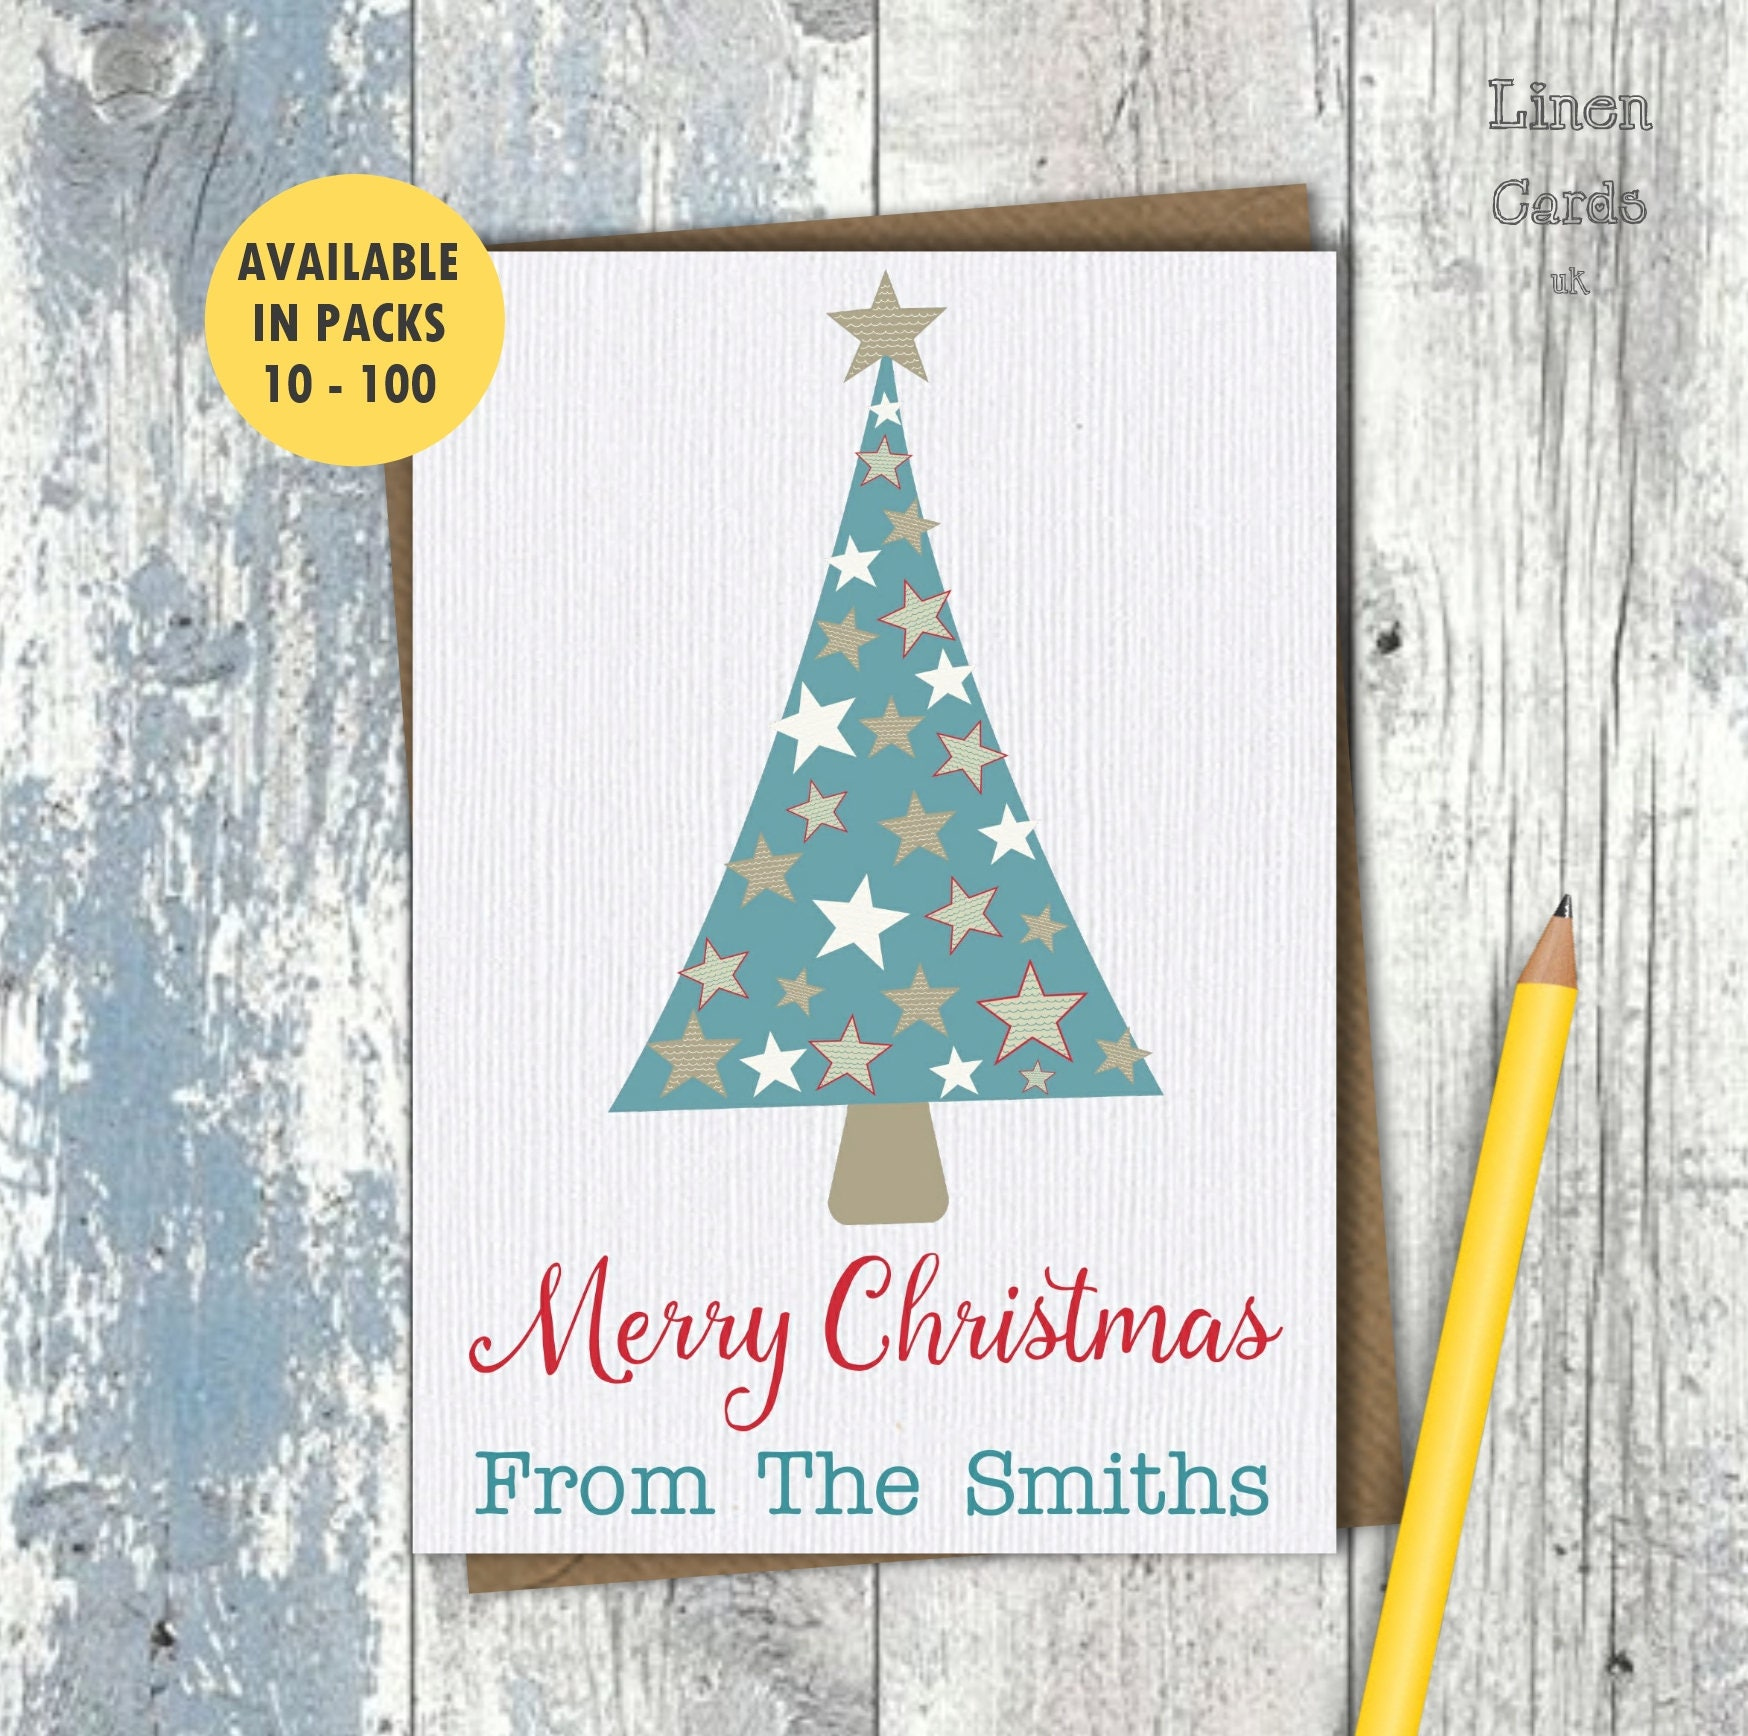 Personalised christmas cards packs childrens kids christmas personalised christmas cards packs childrens kids christmas cards festive greetings cards business company magicingreecefo Images